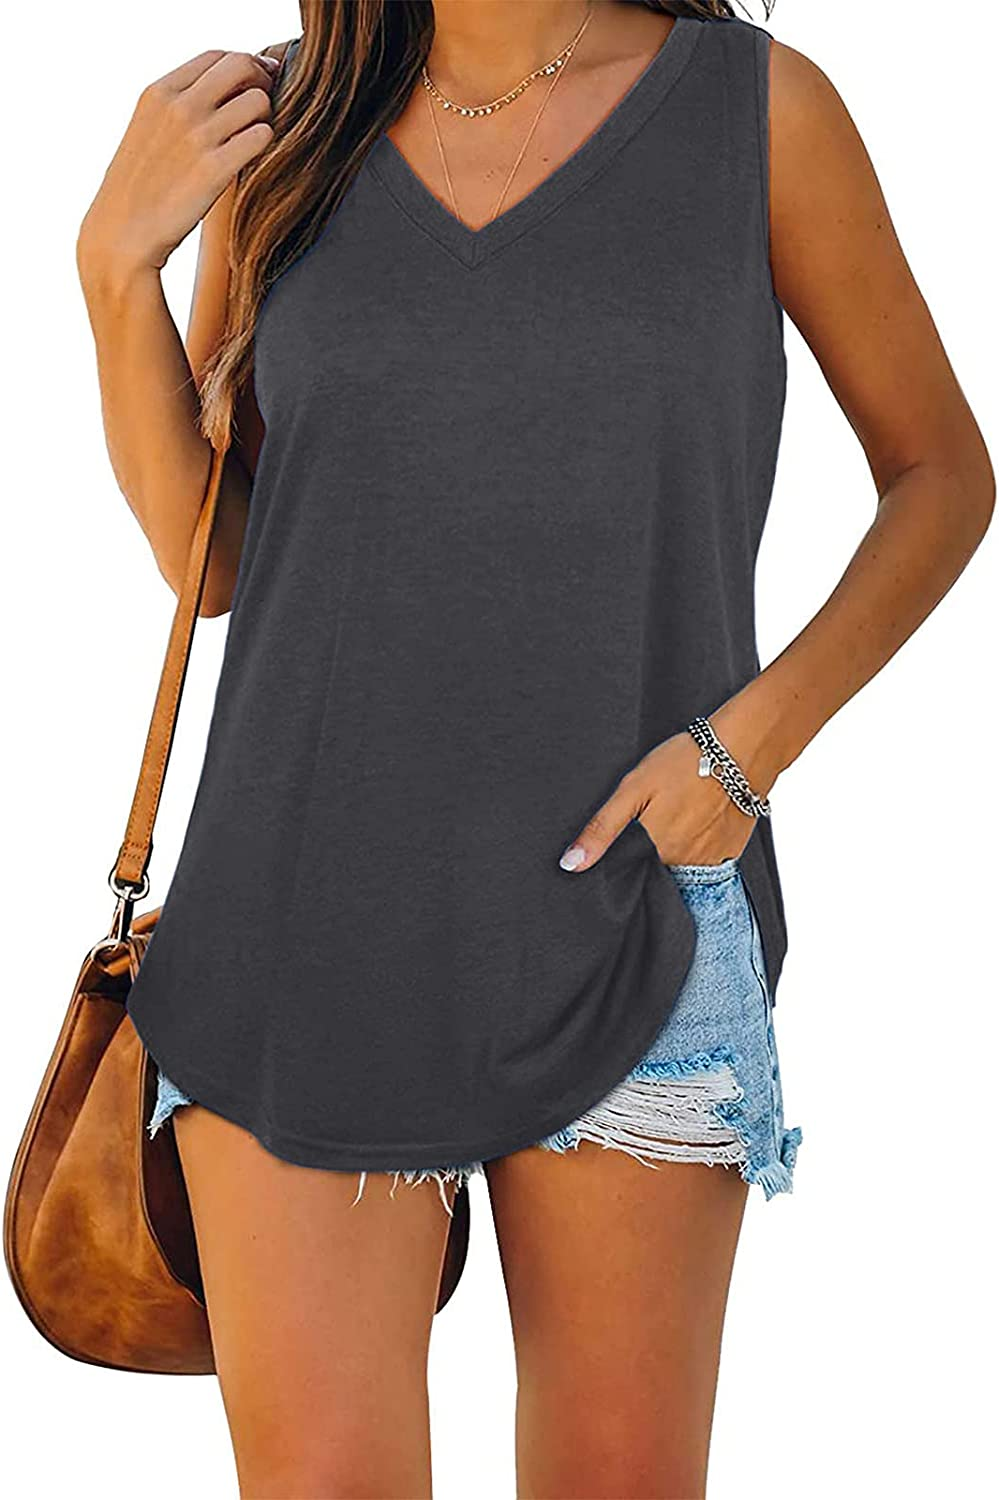 POLLYANNA KEONG Tank Tops for Women Workout,Womens Tank Tops Summer Loose Fit Color Block Casual Sleeveless Tshirts